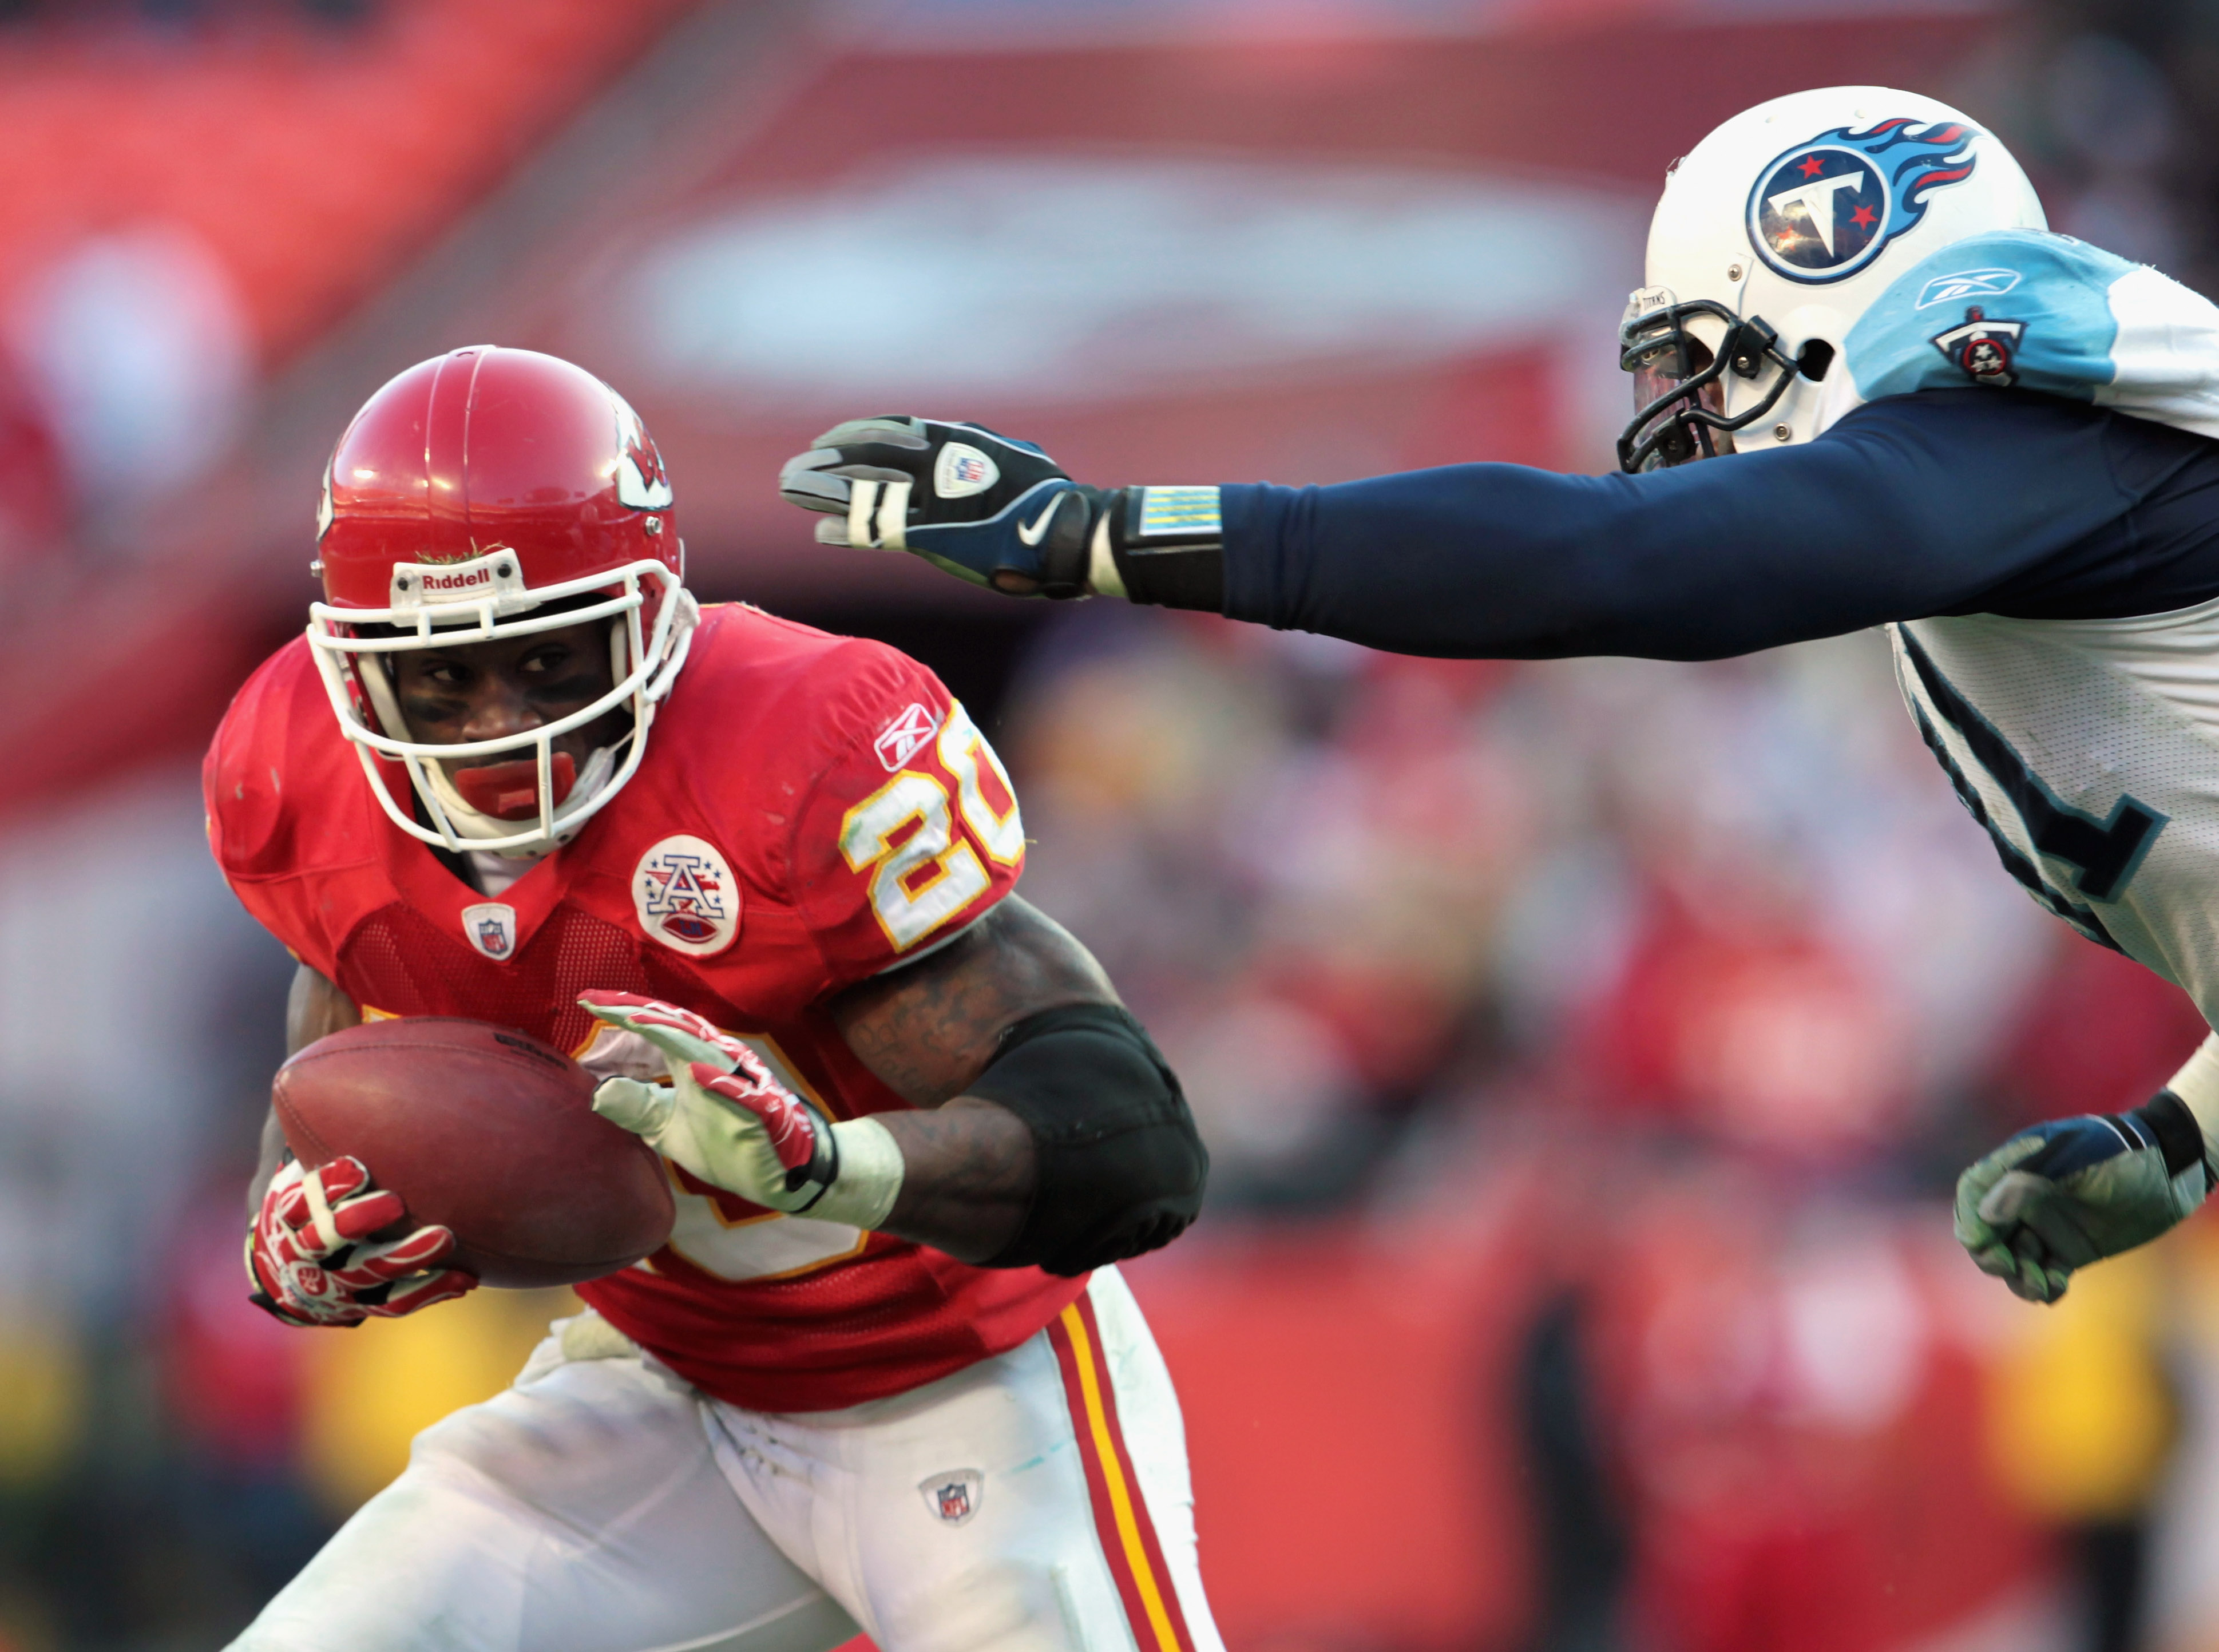 KANSAS CITY, MO - DECEMBER 26:  Thomas Jones #20 of the Kansas City Chiefs carries the ball during the game against the Tennessee Titans on December 26, 2010 at Arrowhead Stadium in Kansas City, Missouri.  (Photo by Jamie Squire/Getty Images)